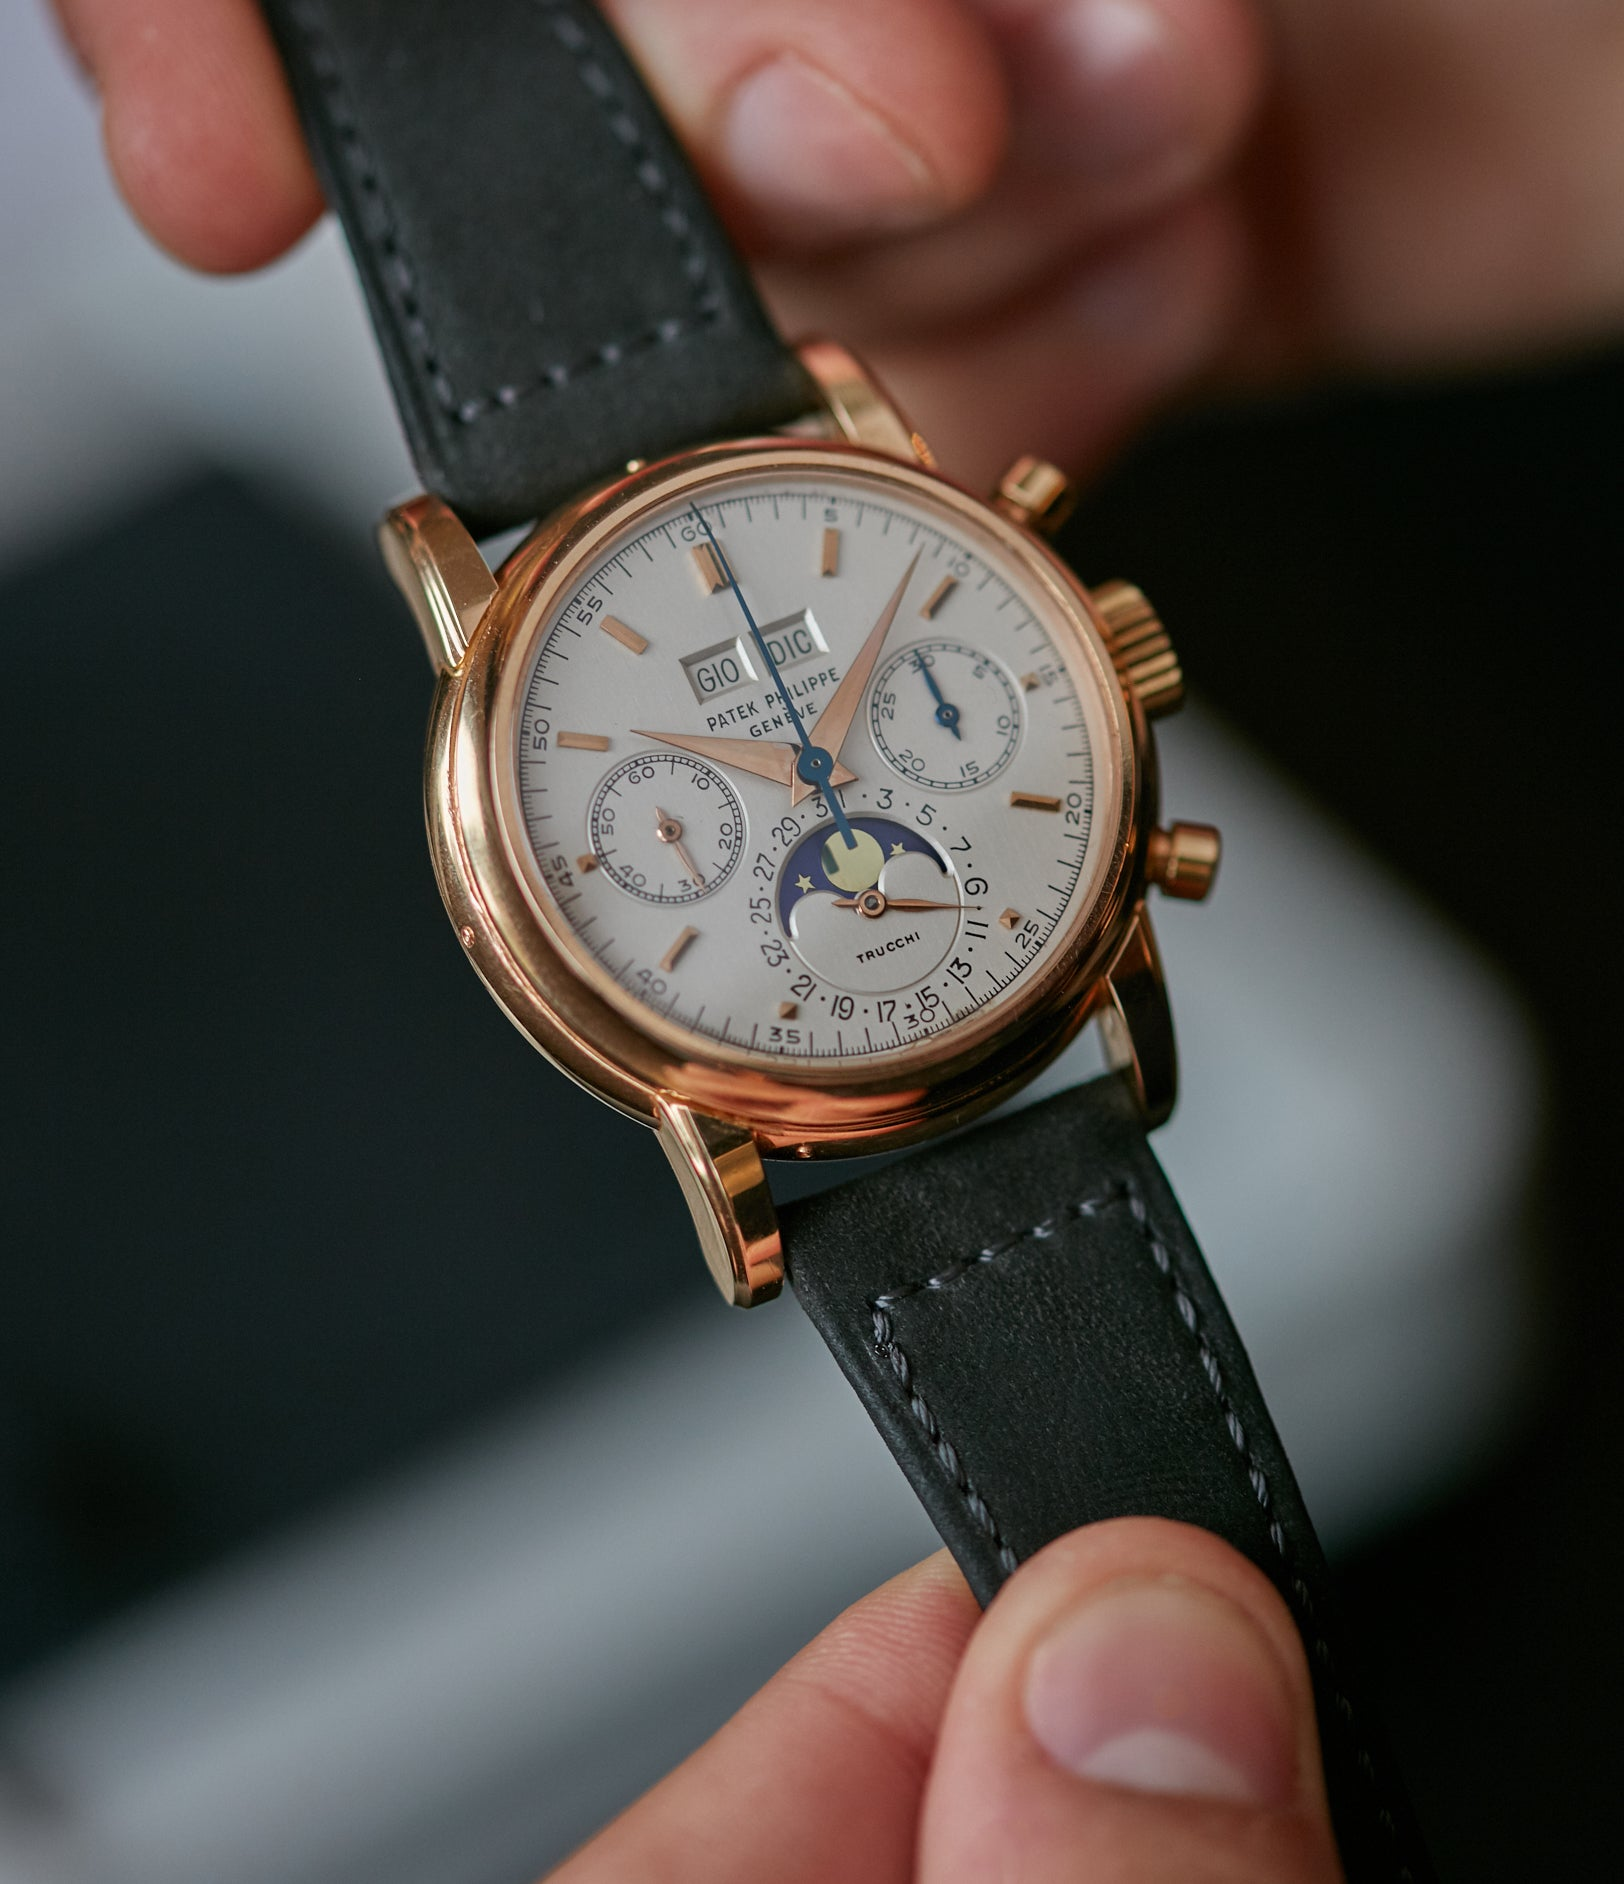 Patek Philippe ref. 2499 in rose gold with a Trucchi signed dial that sold at Phillips for CHF1.58m